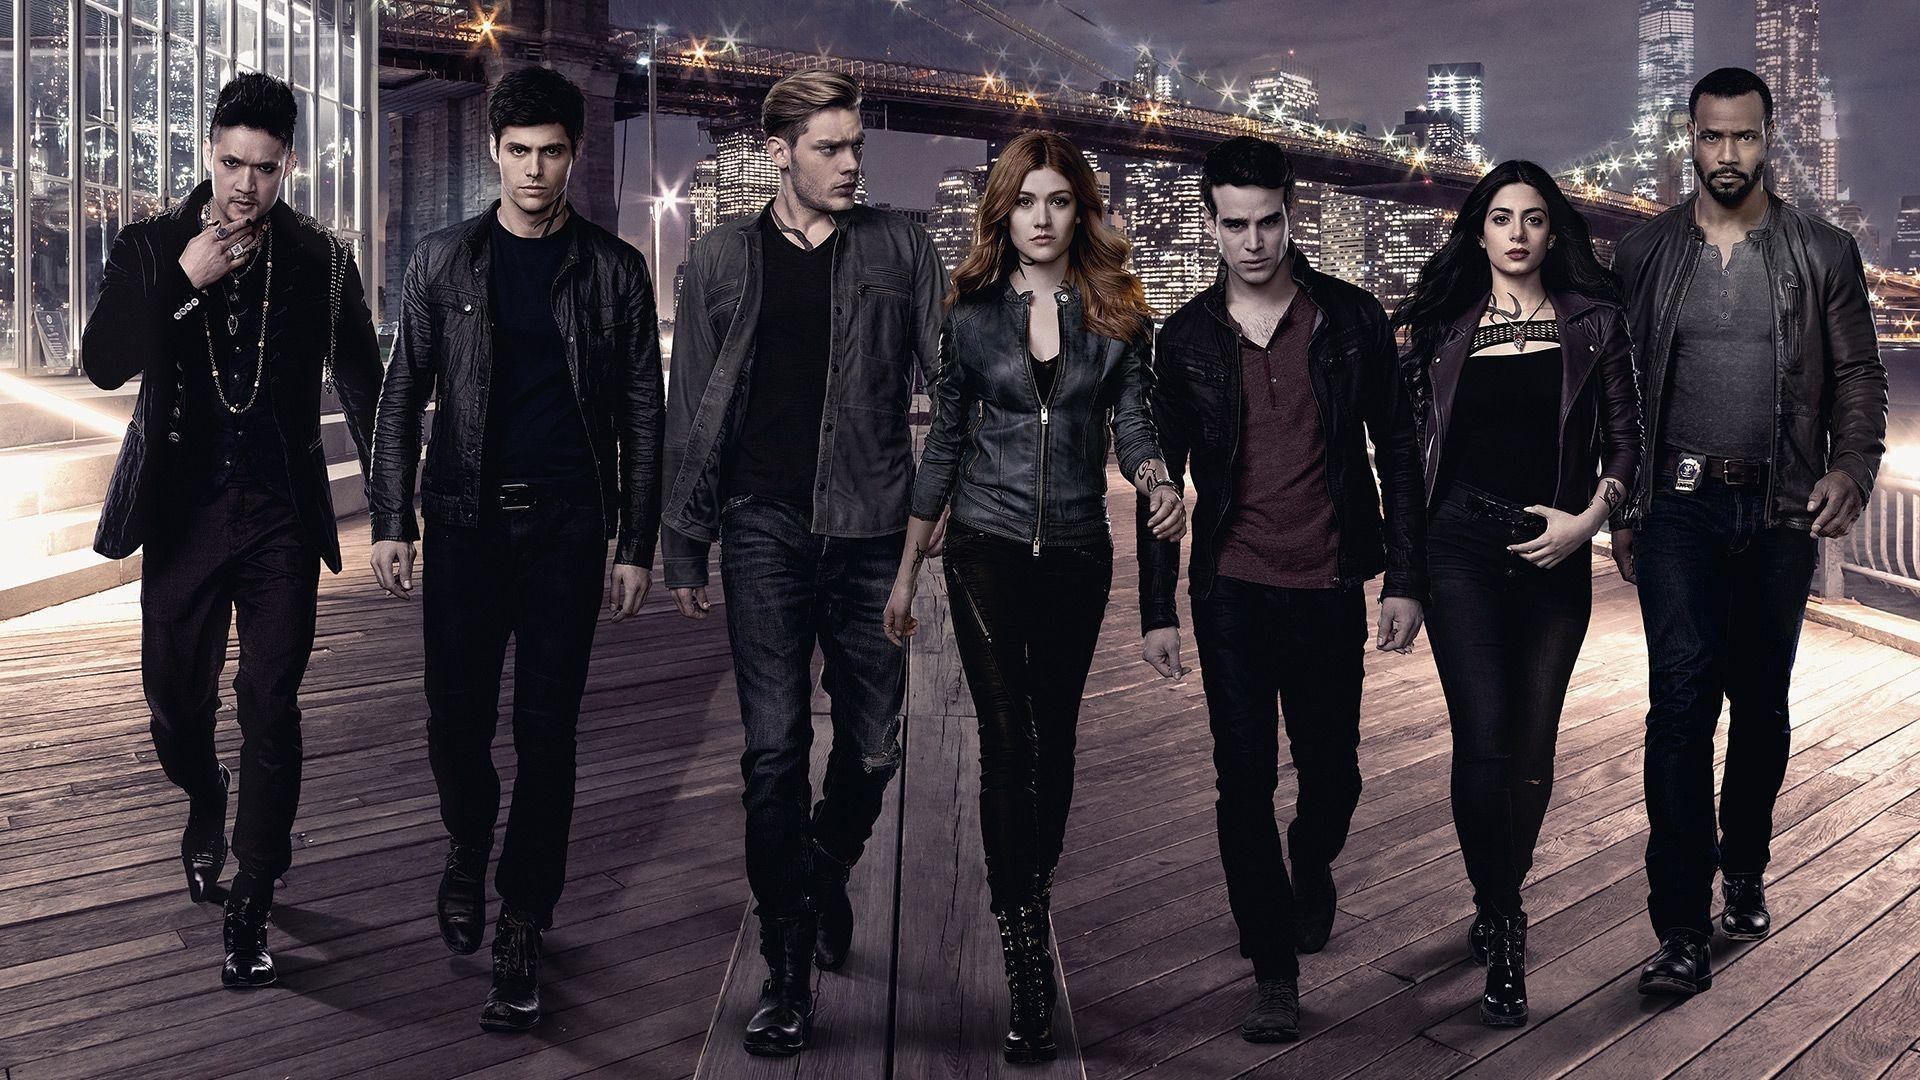 Shadowhunters - Shadowhunters Wallpaper (1920x1080) (283022)